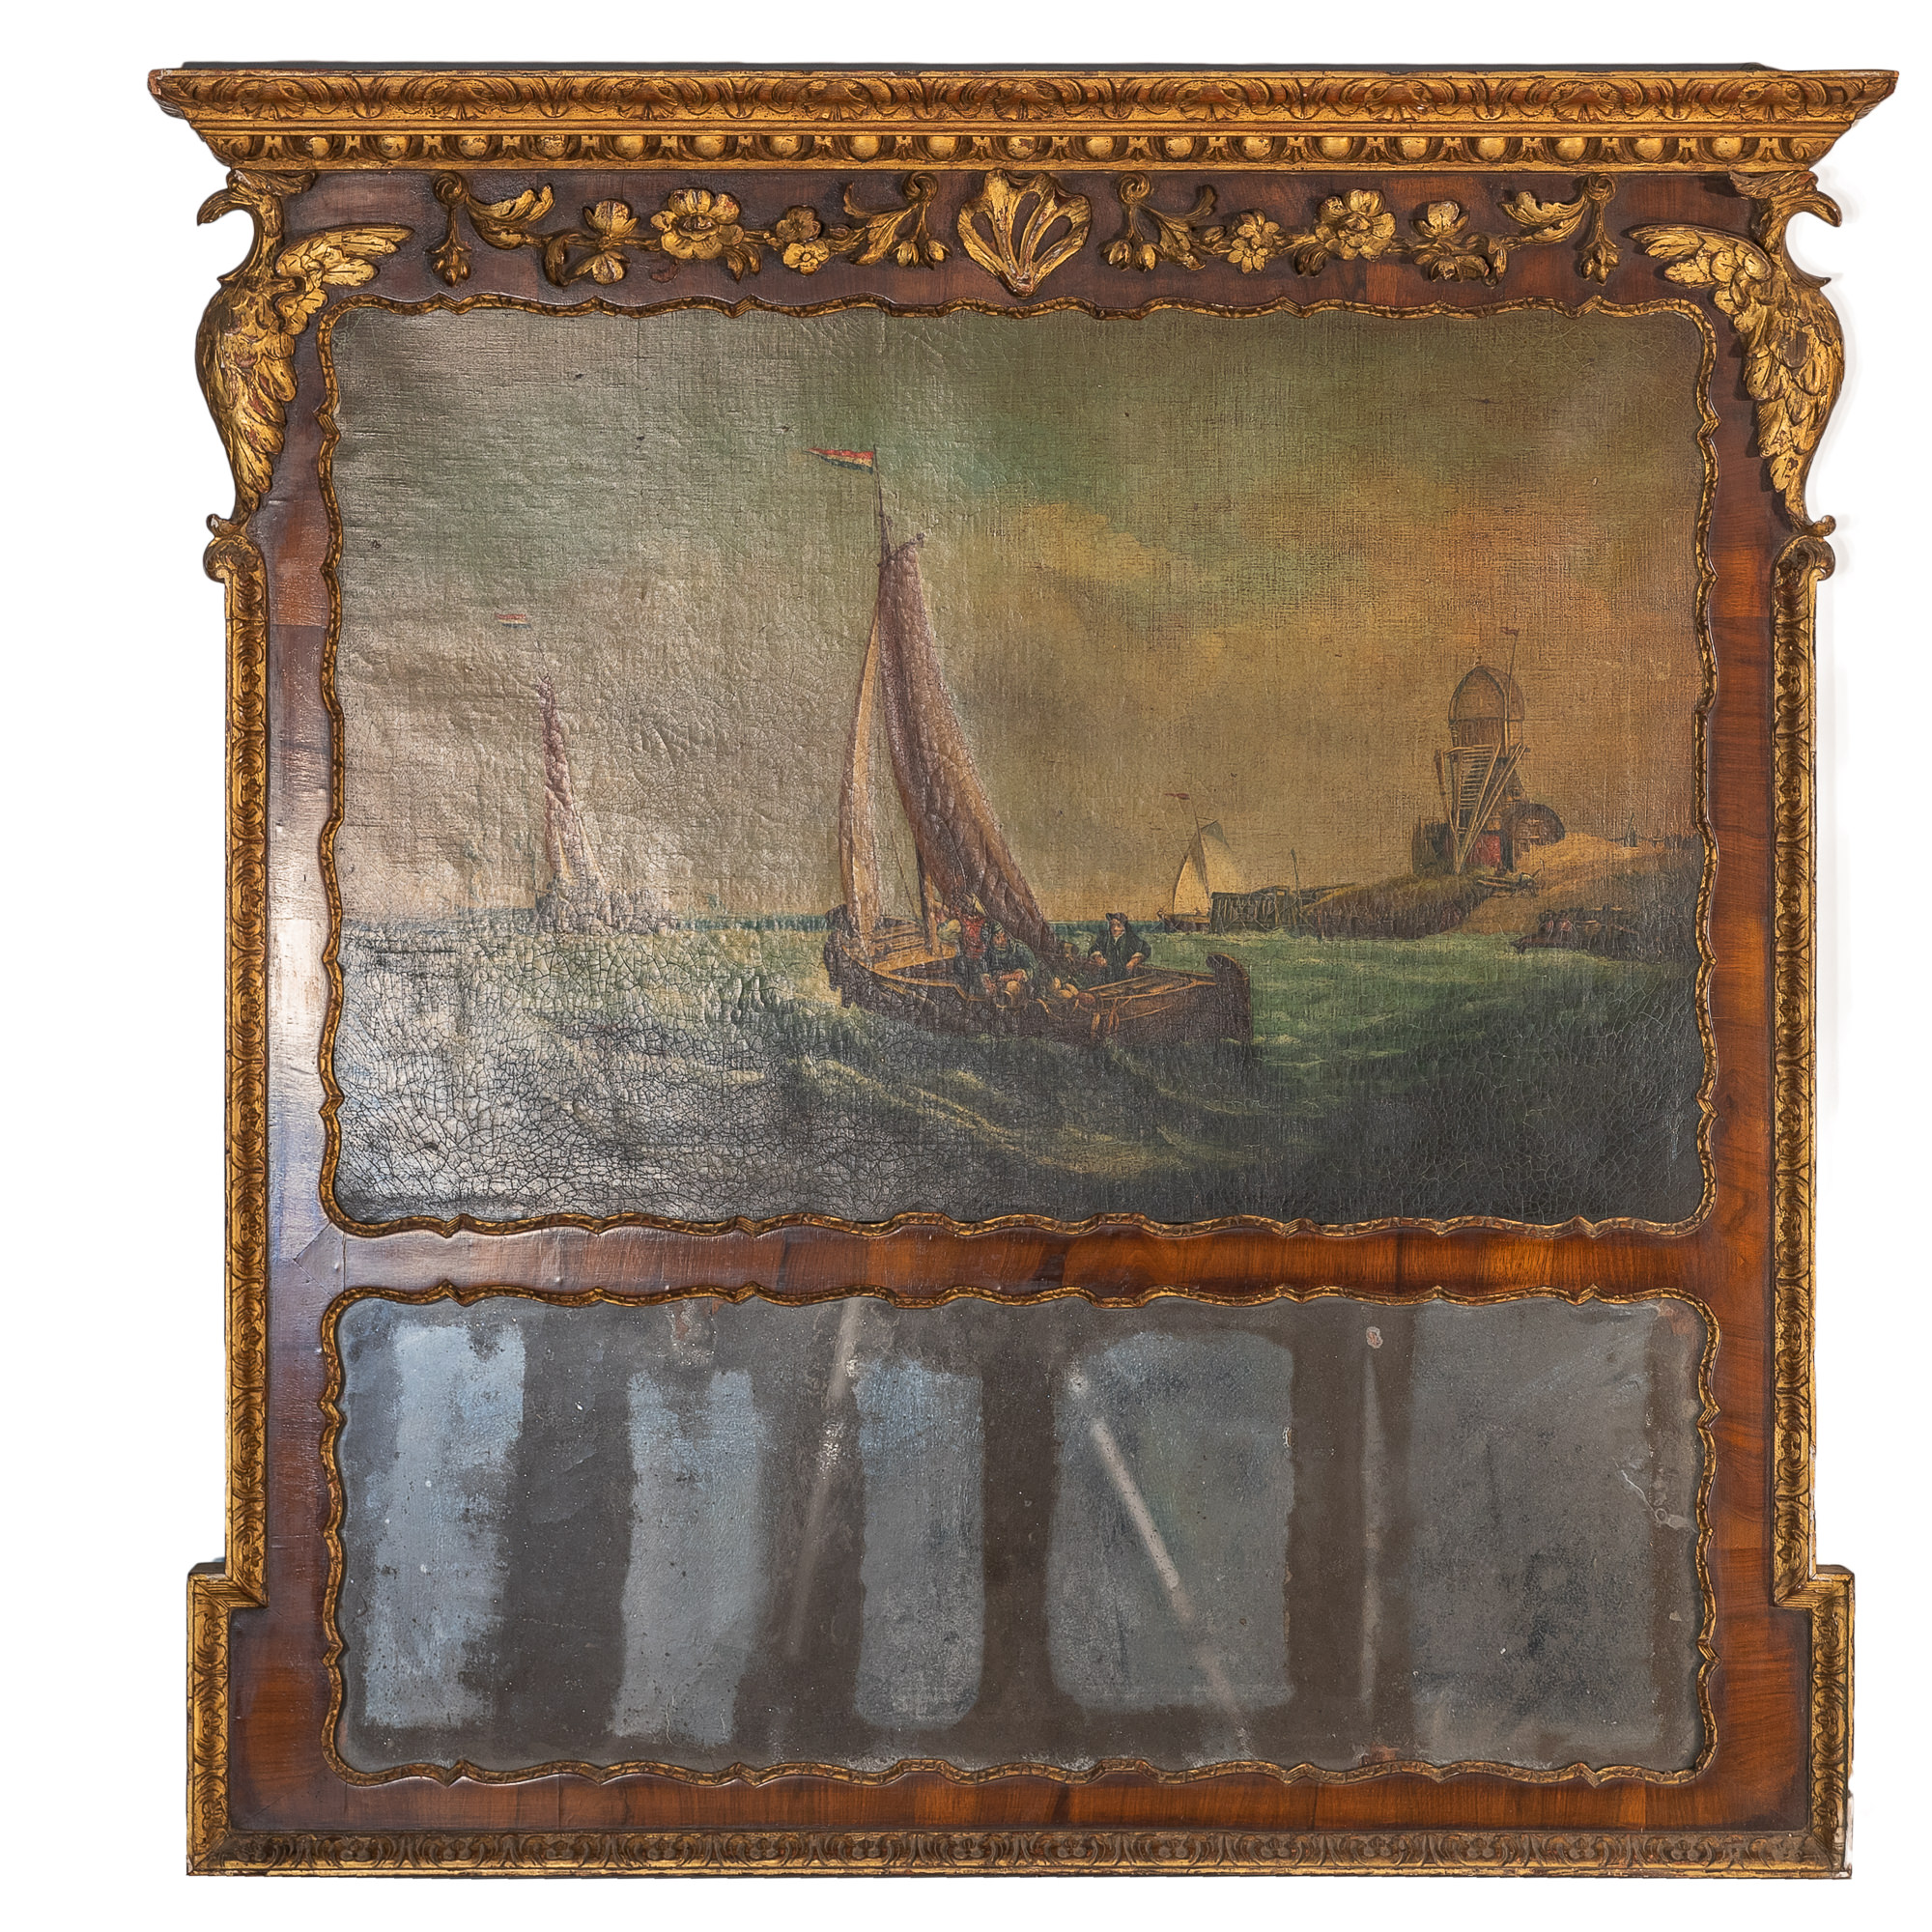 'Regency Carved Giltwood And Mahogany Trumeau Mirror Painted with A Nautical Scene 19th Century'